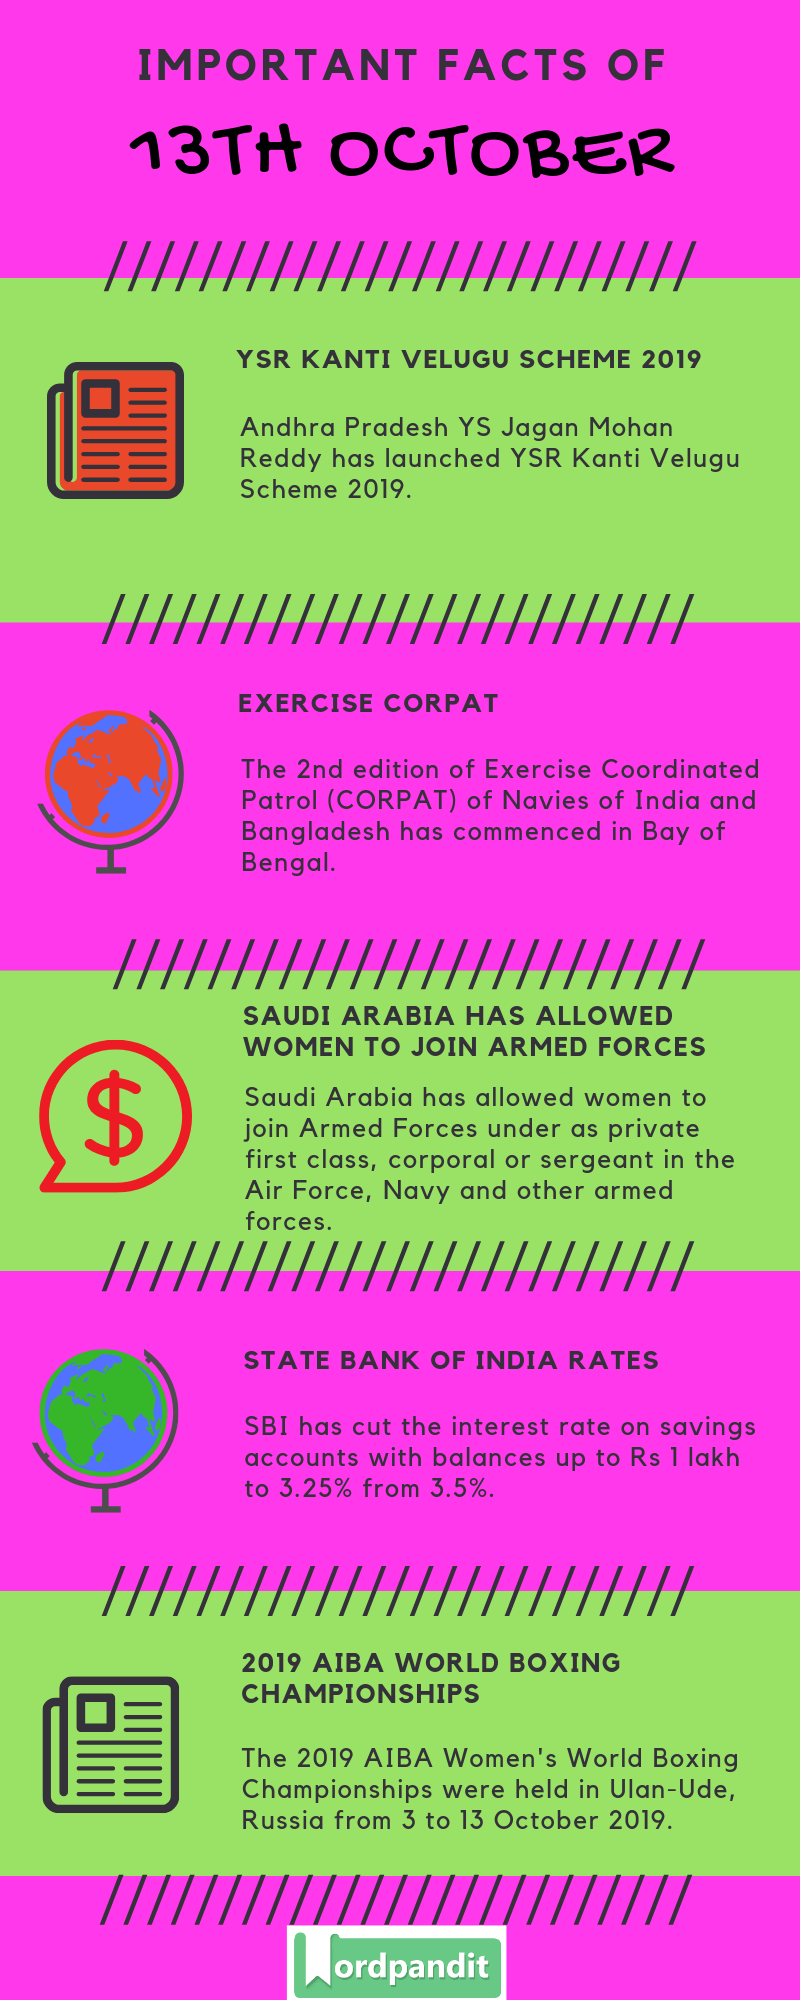 Daily Current Affairs 13 October 2019 Current Affairs Quiz 13 October 2019 Current Affairs Infographic